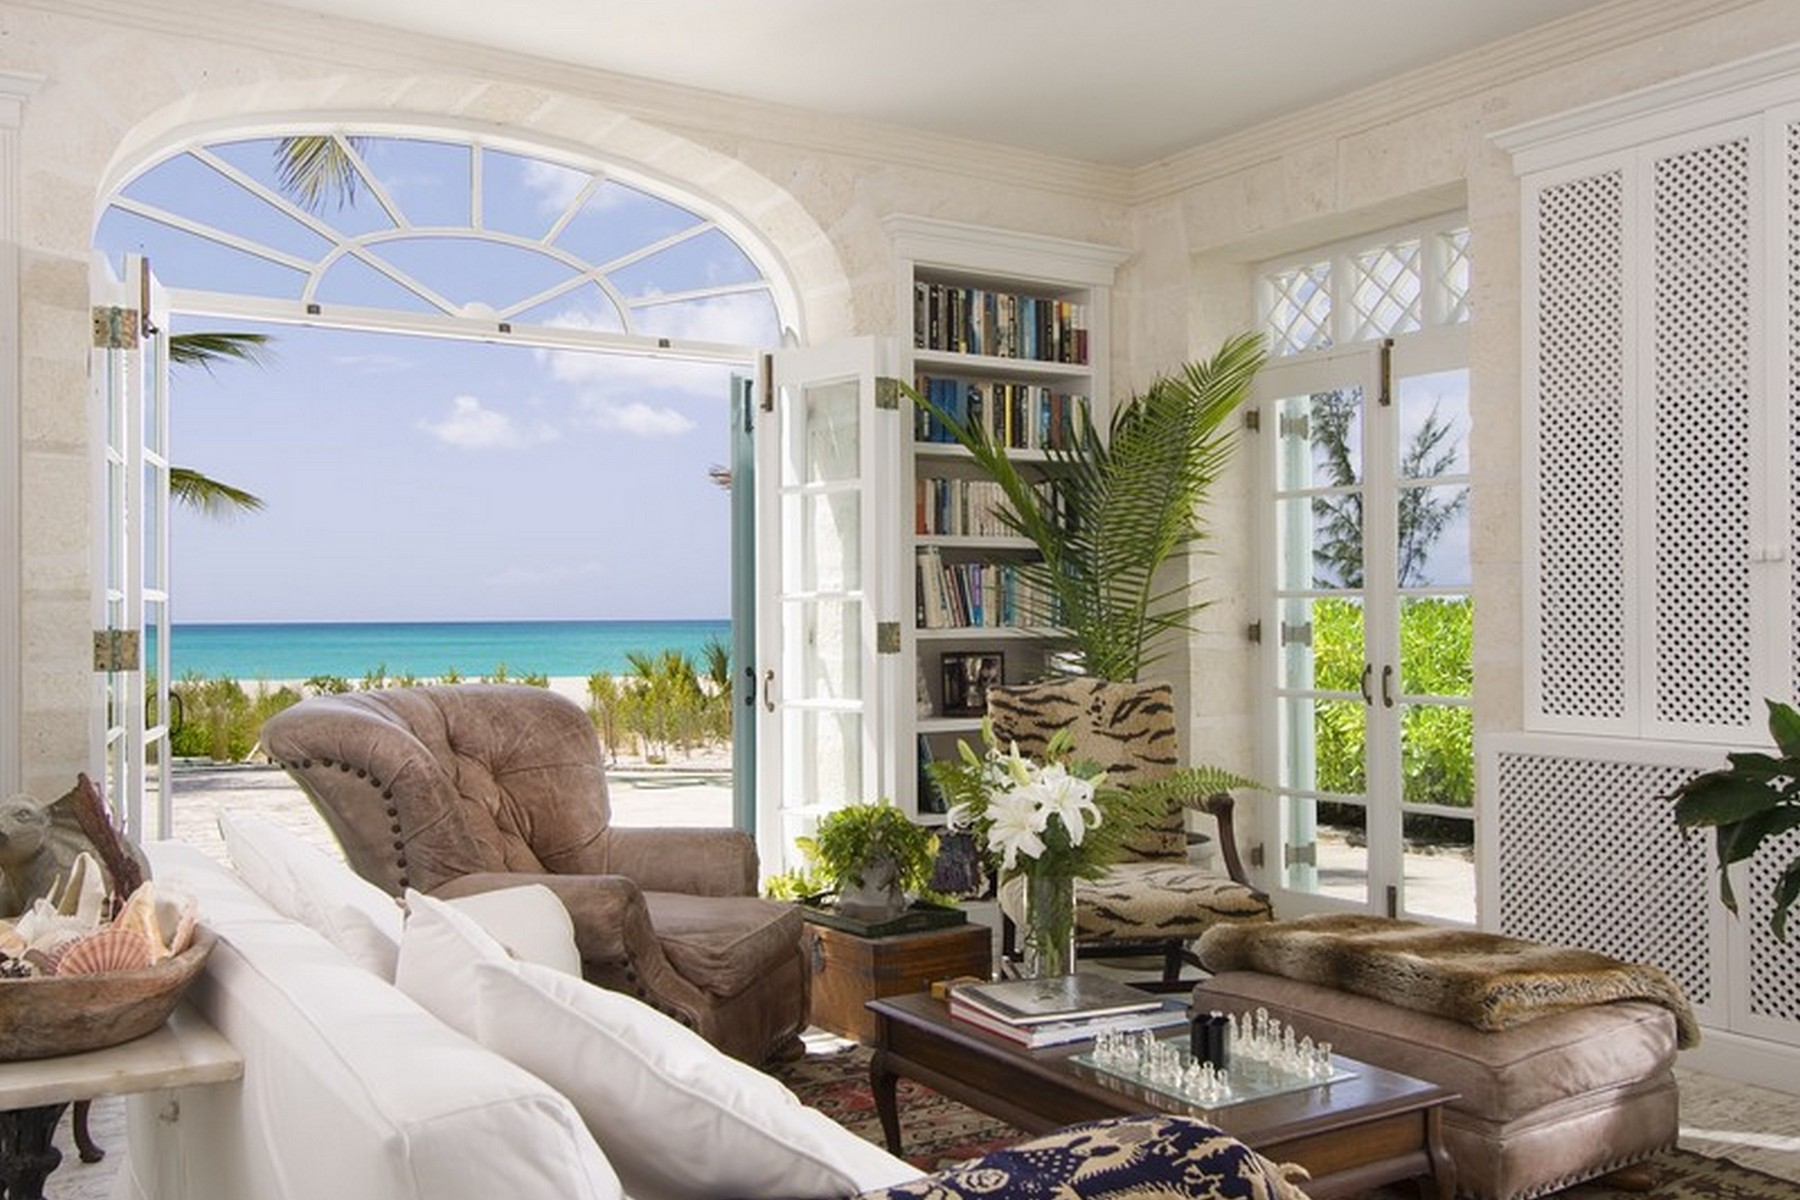 Additional photo for property listing at Coral House   Vacation Rental Beachfront Grace Bay, Providenciales TCI BWI Turks And Caicos Islands